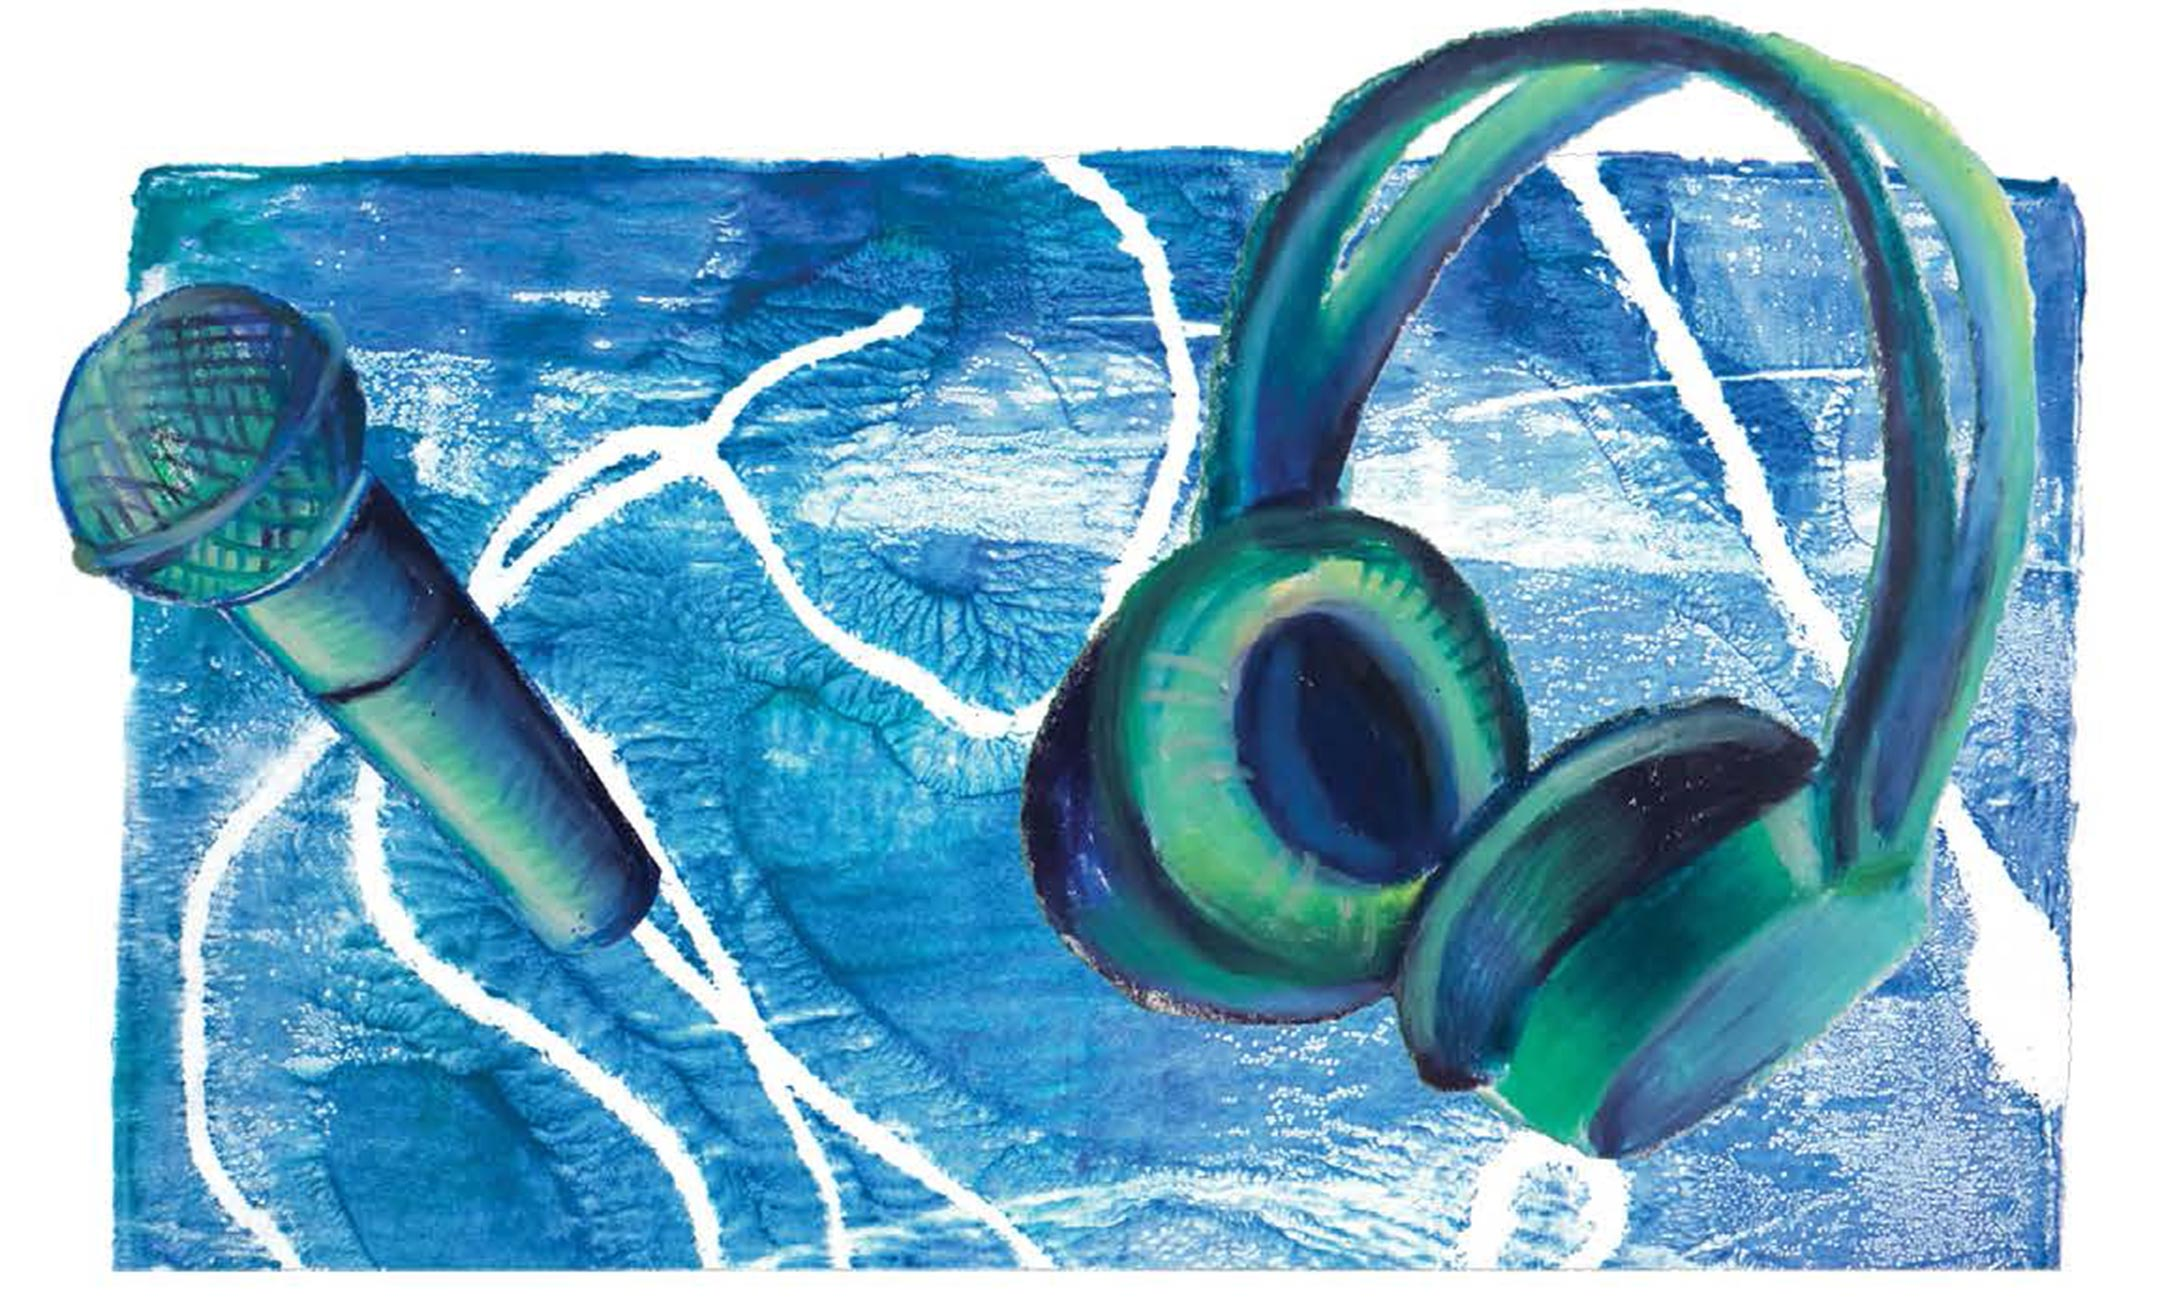 Painting of blue and green microphone and headphones.